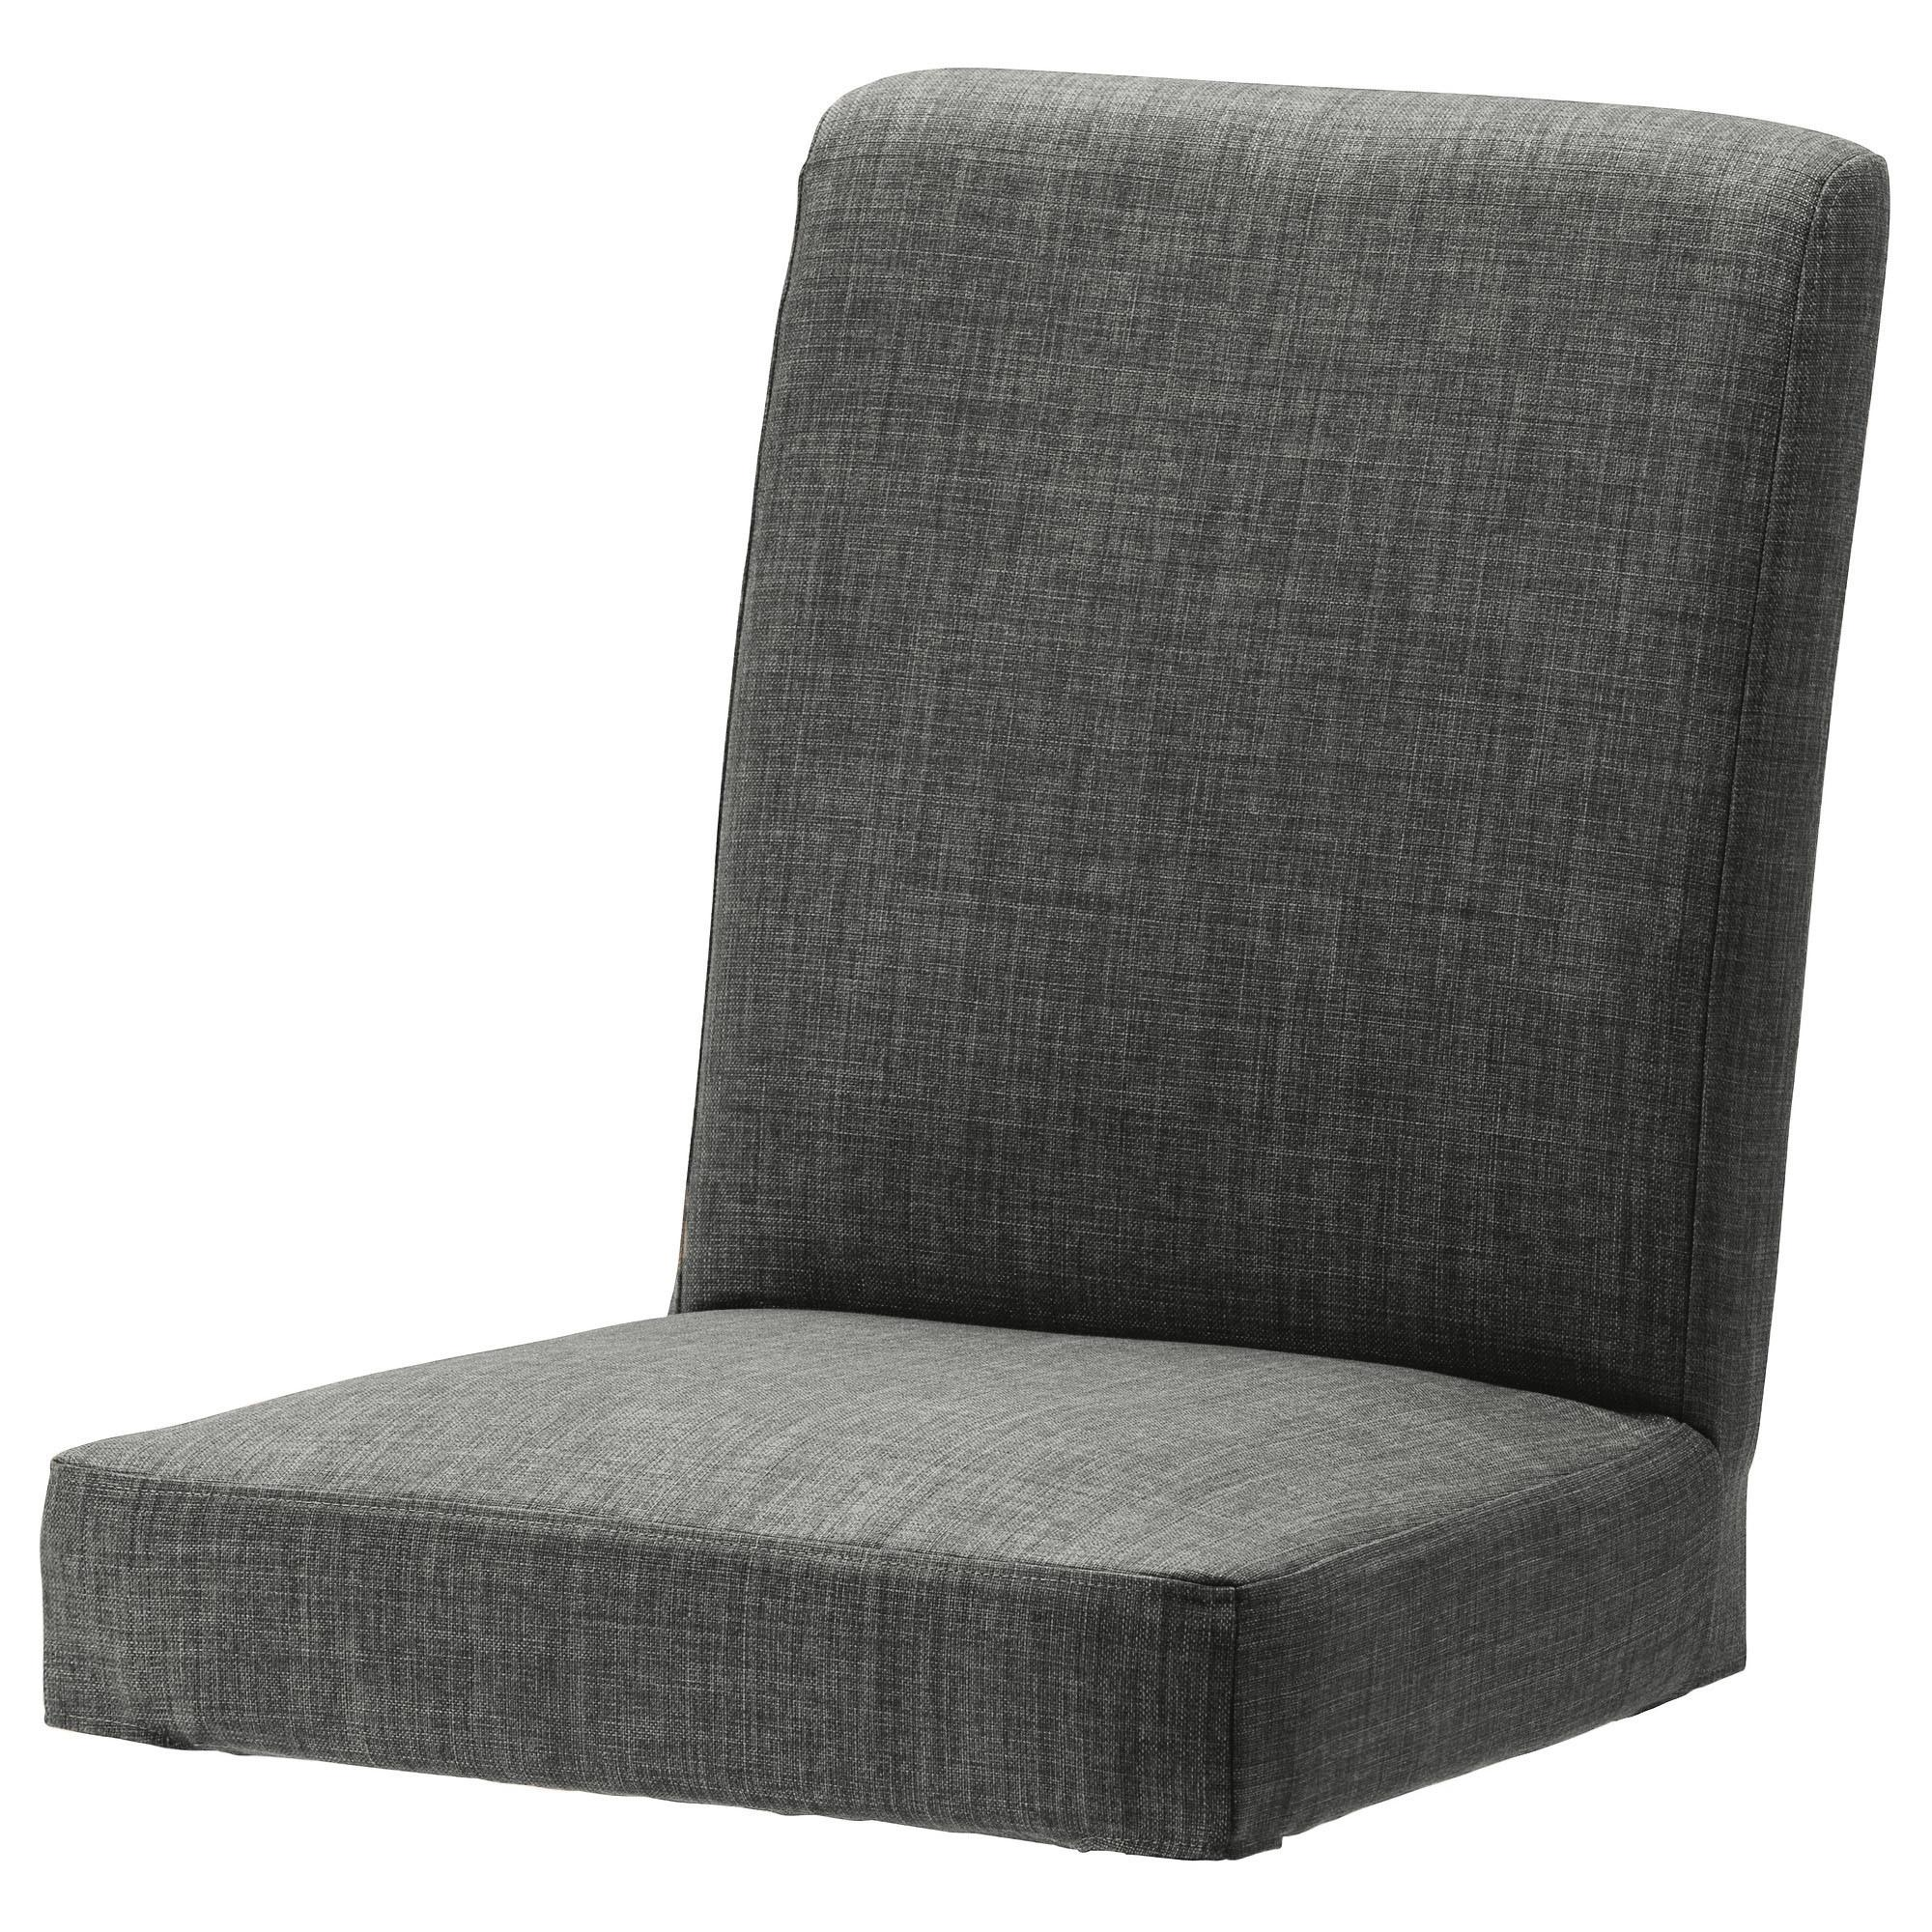 Replacement Slip Cover Henriksdal Dining Chairs